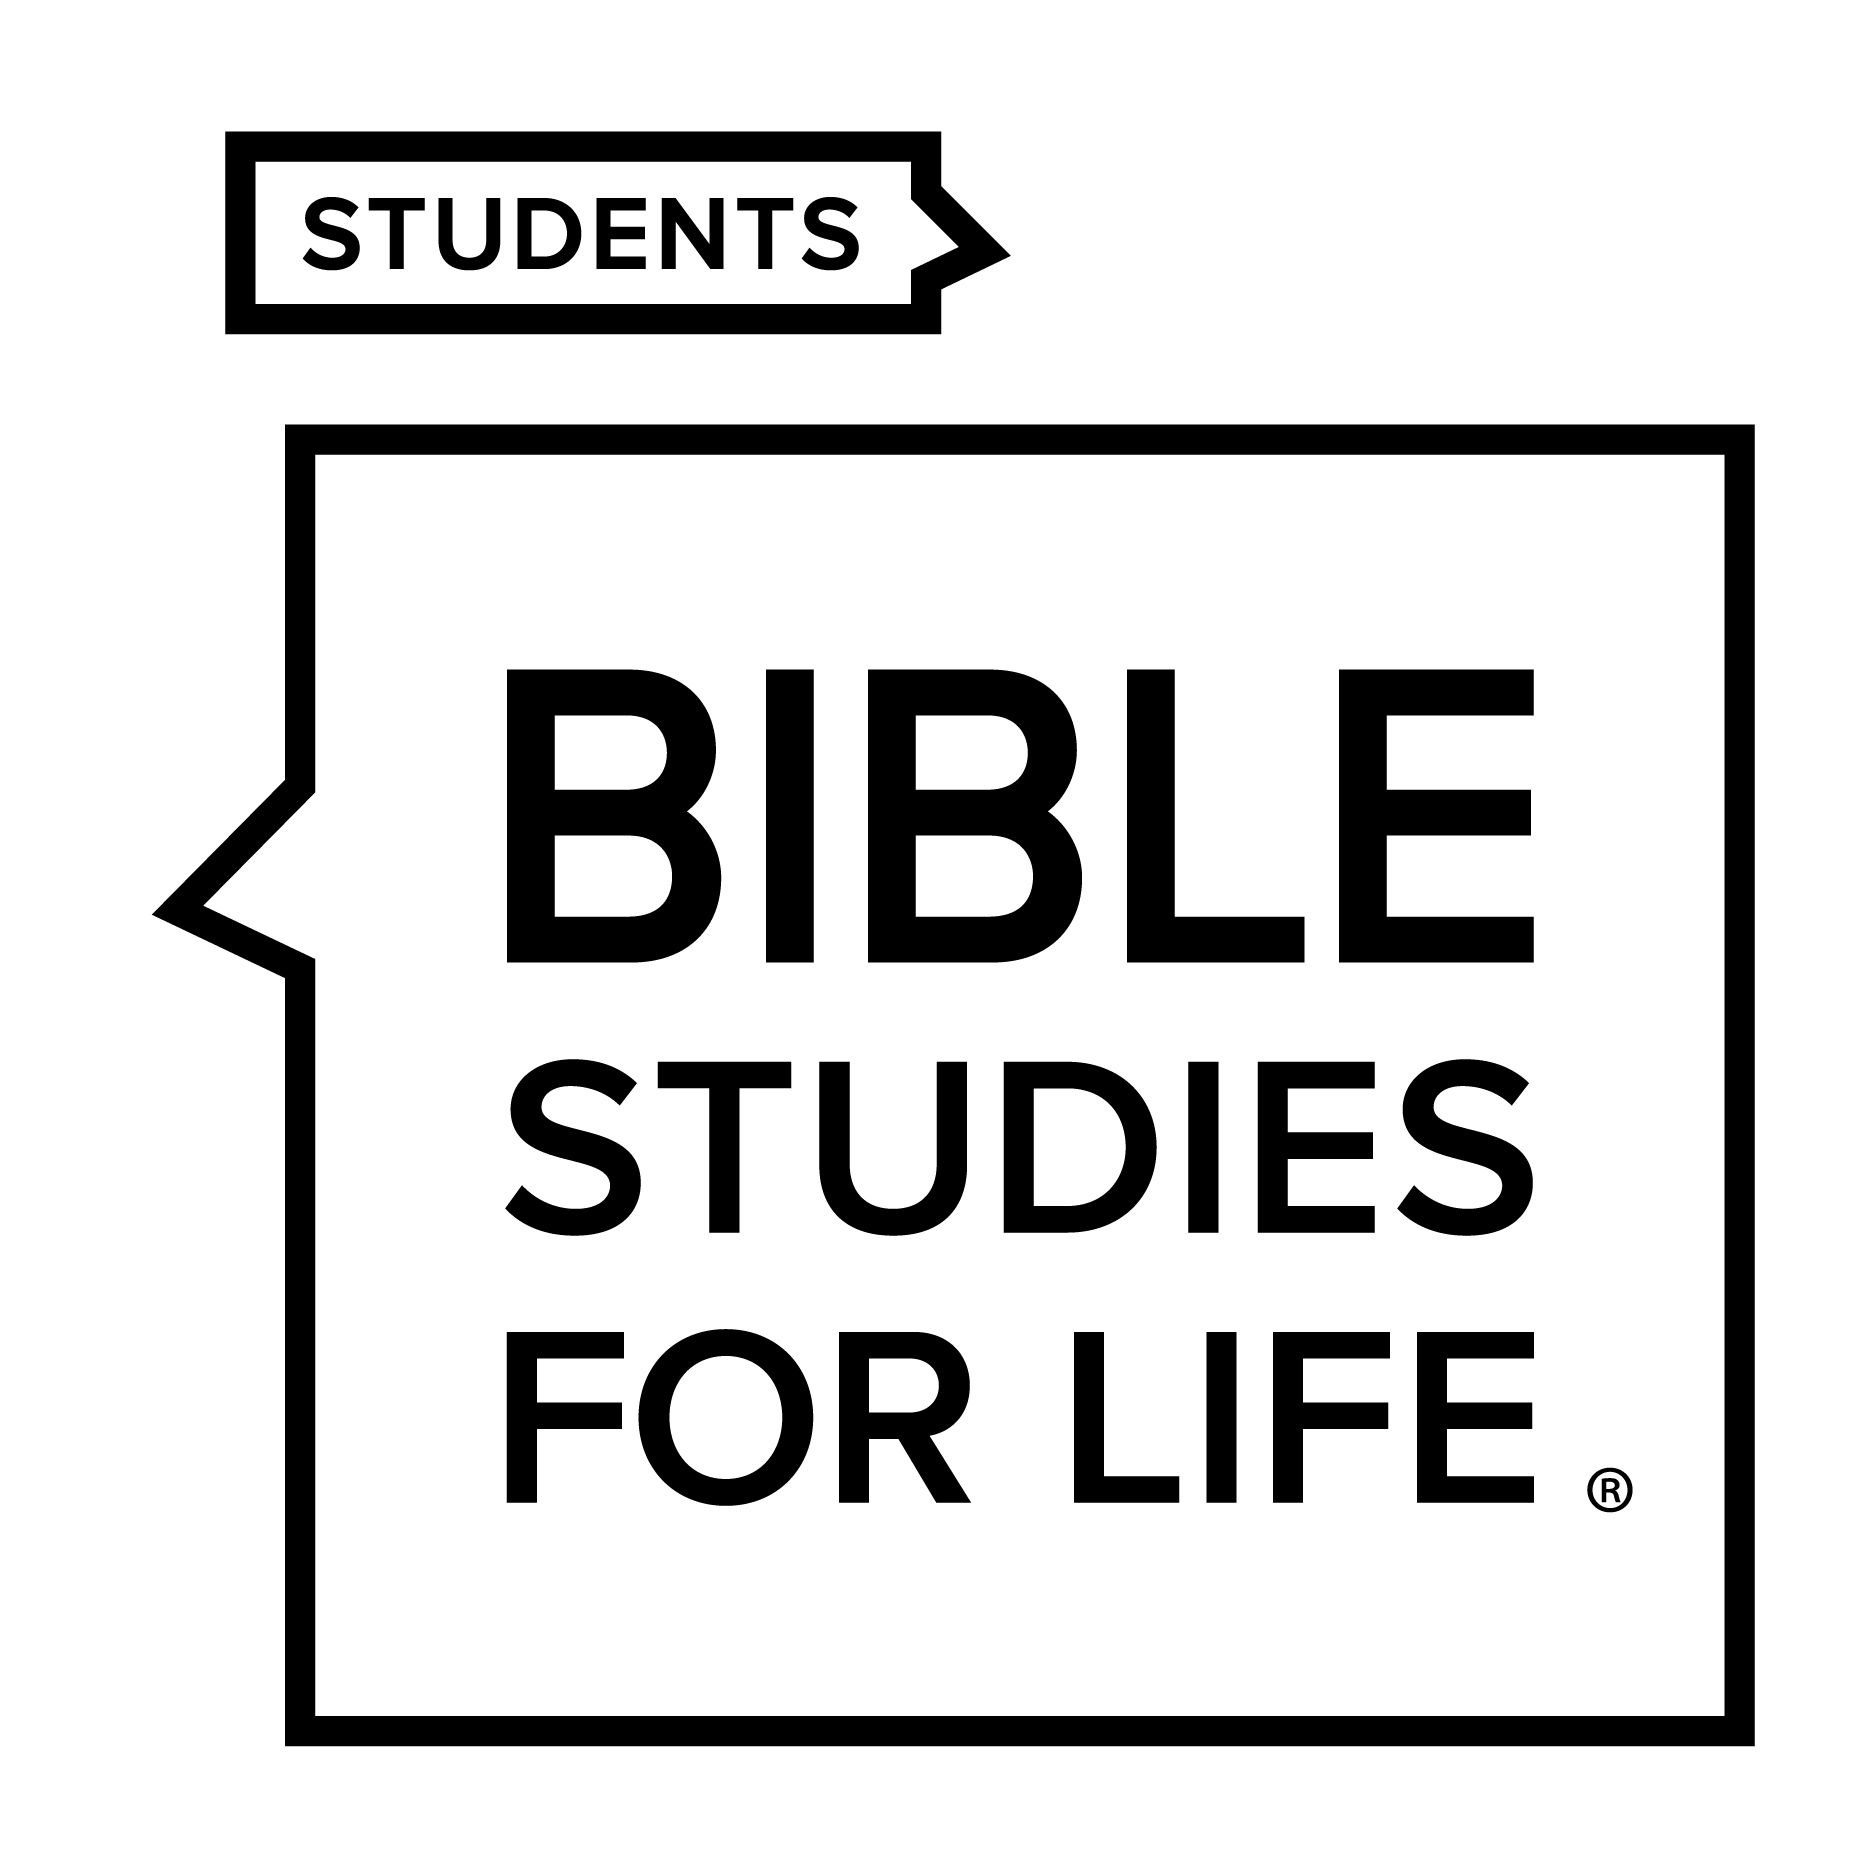 Bible Studies for Life Students